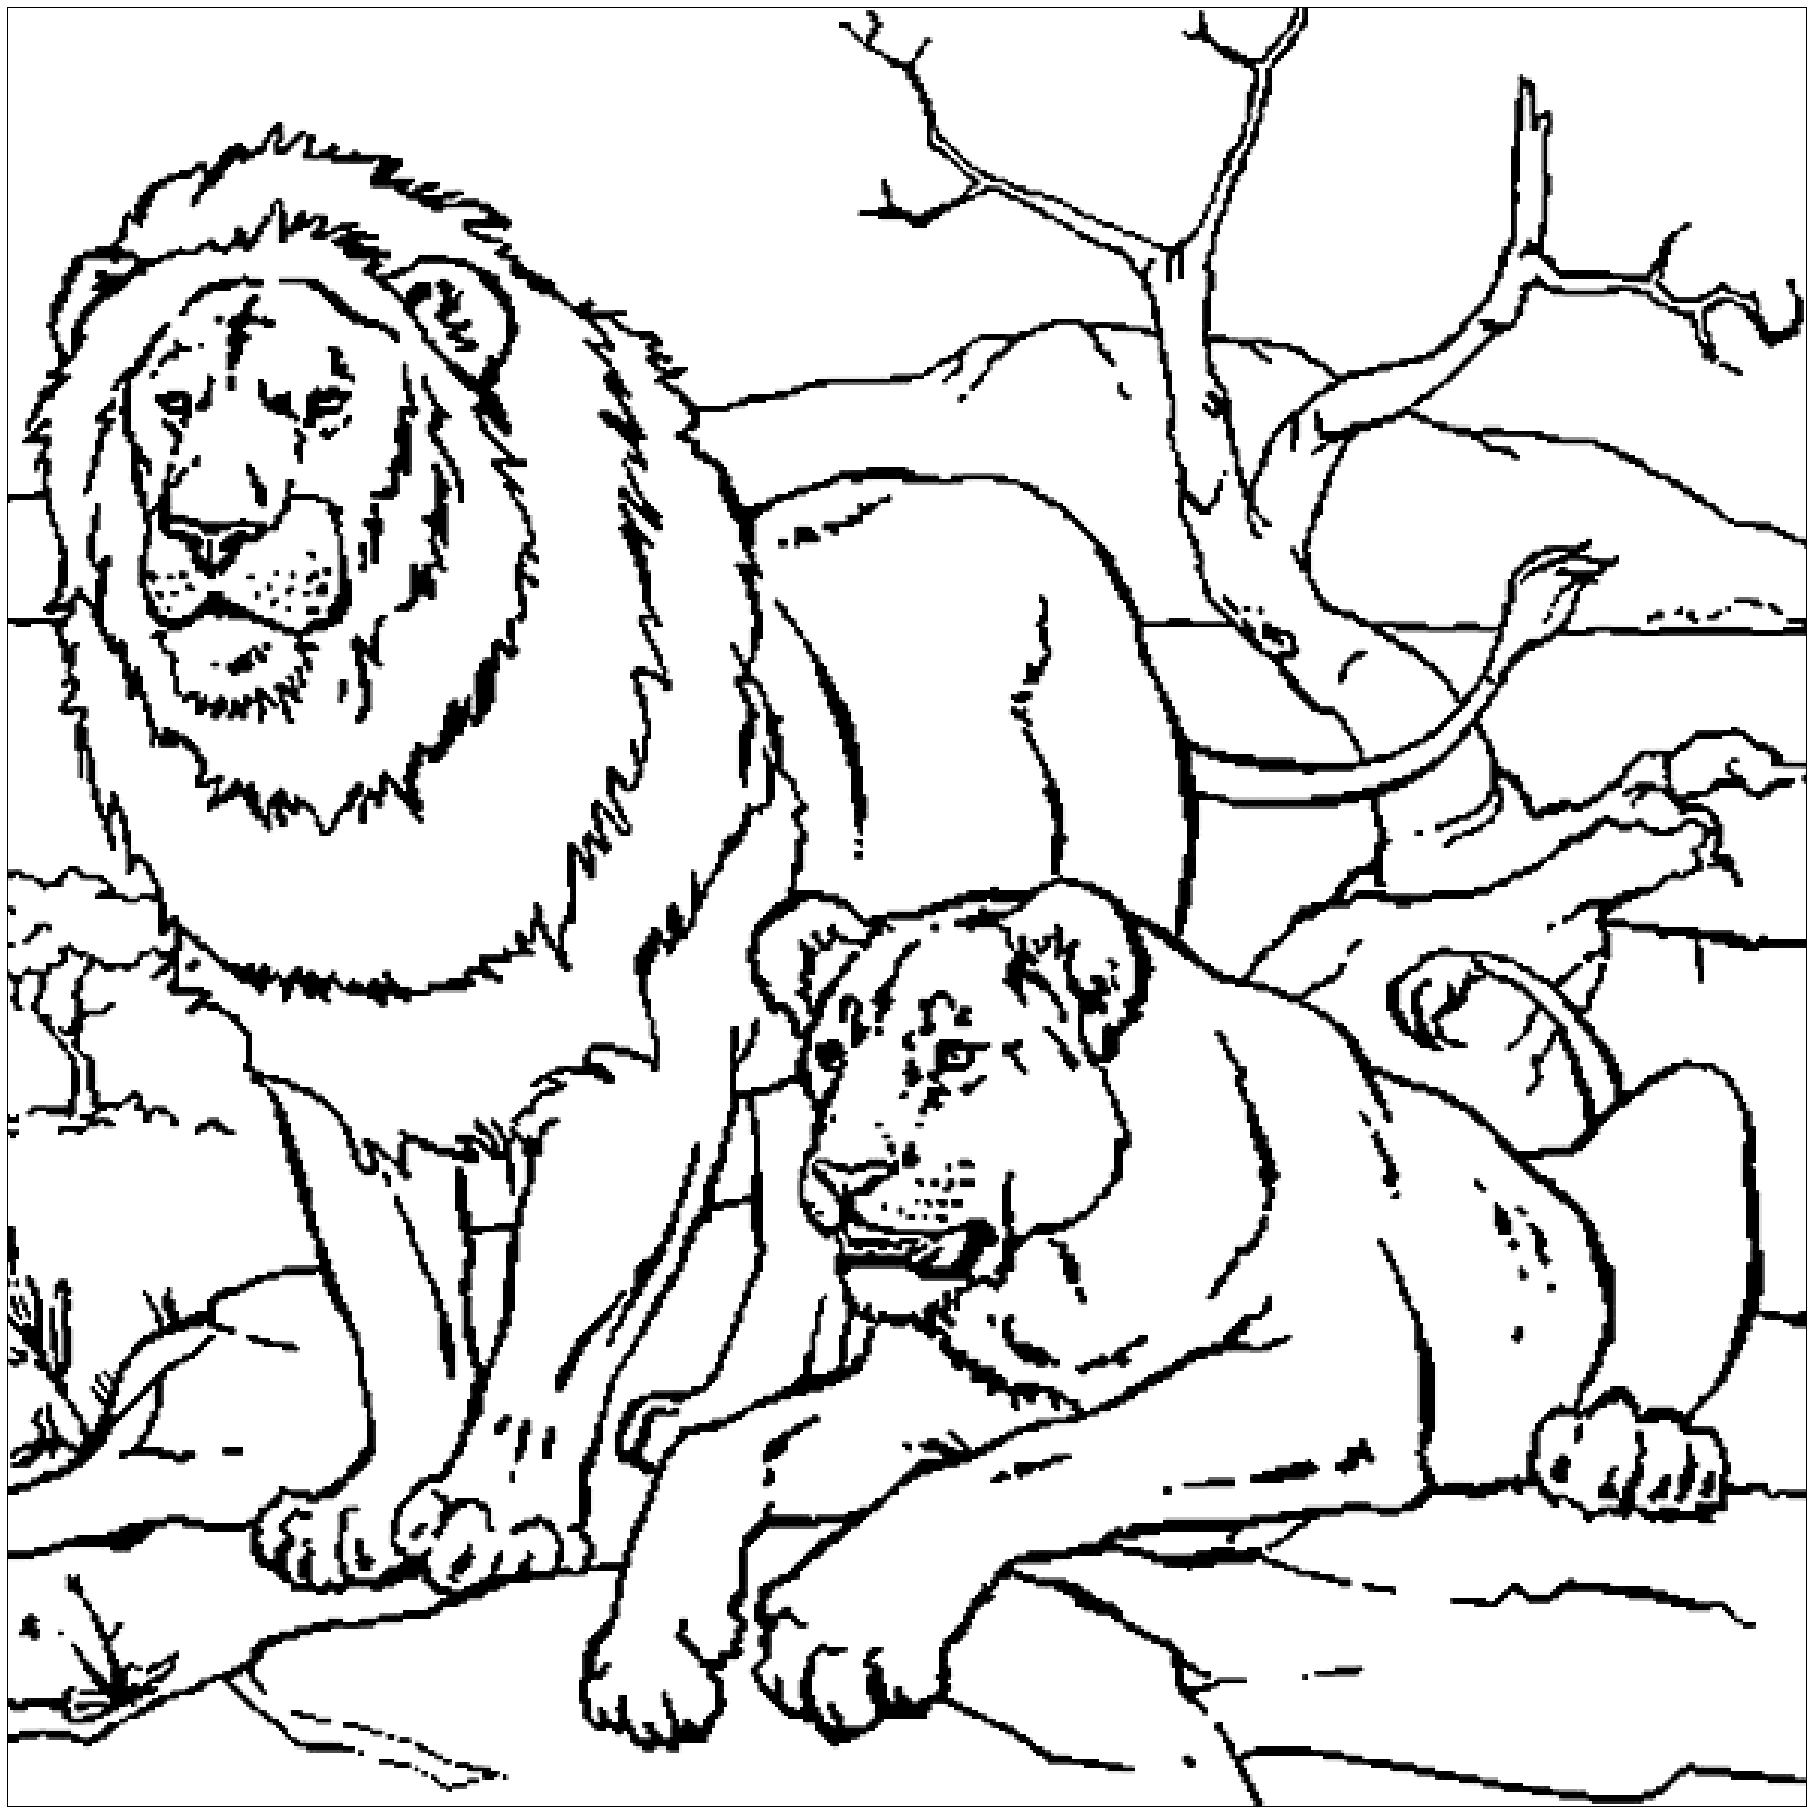 coloring pages for kids lion lion drawing for kids at getdrawings free download kids pages coloring lion for